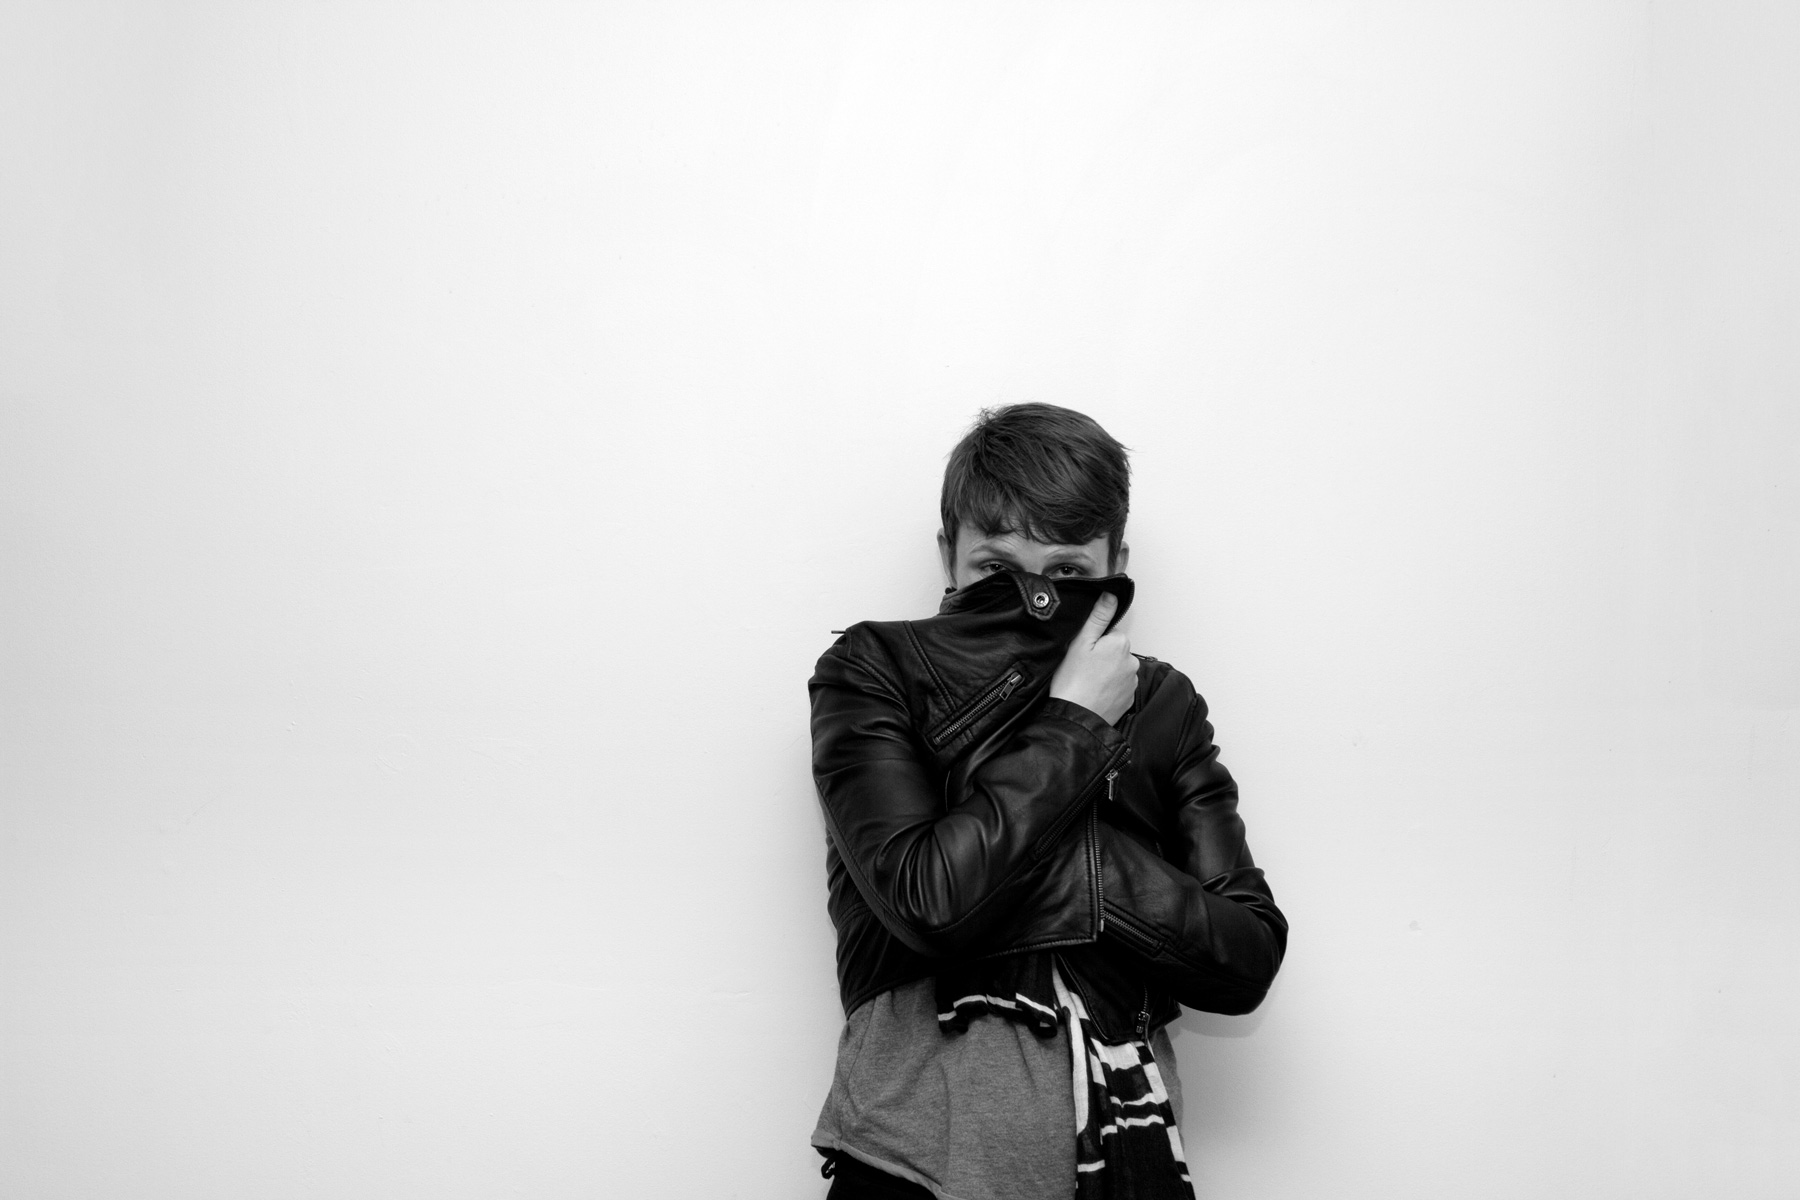 A woman holding her jacket across her face